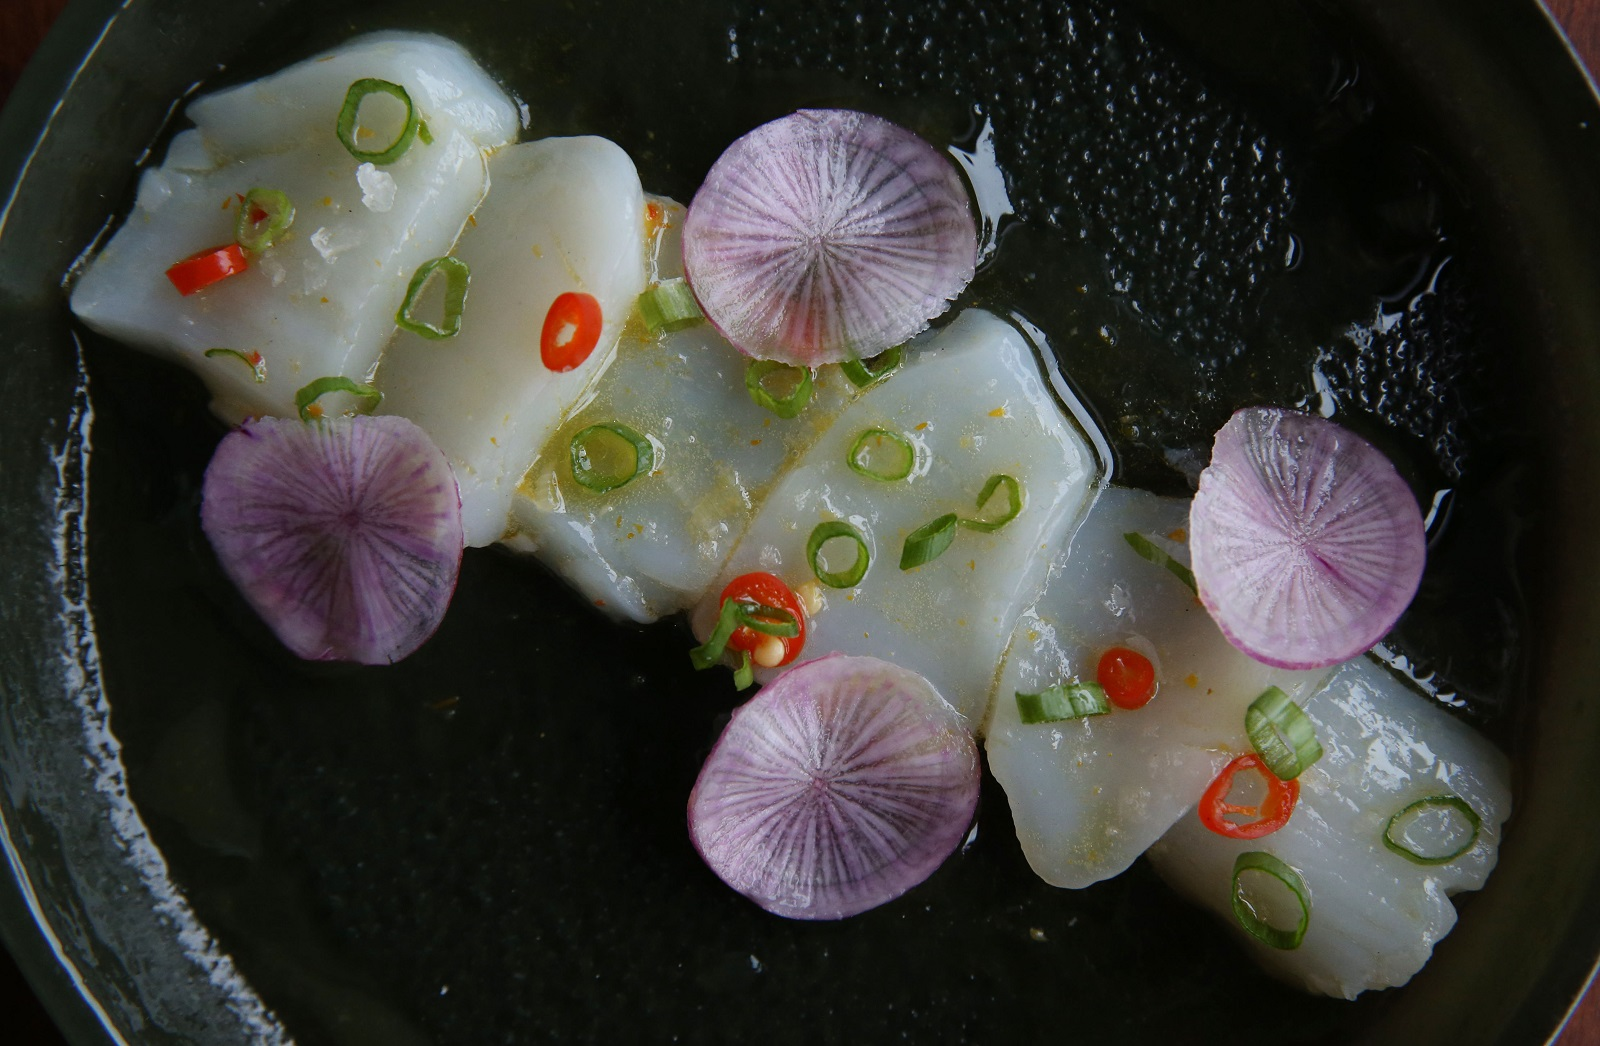 The Dapper Goose, which prepared this scallop crudo, is among first-time participants in Dining OUt for Life 2017. (Sharon Cantillon/Buffalo News)